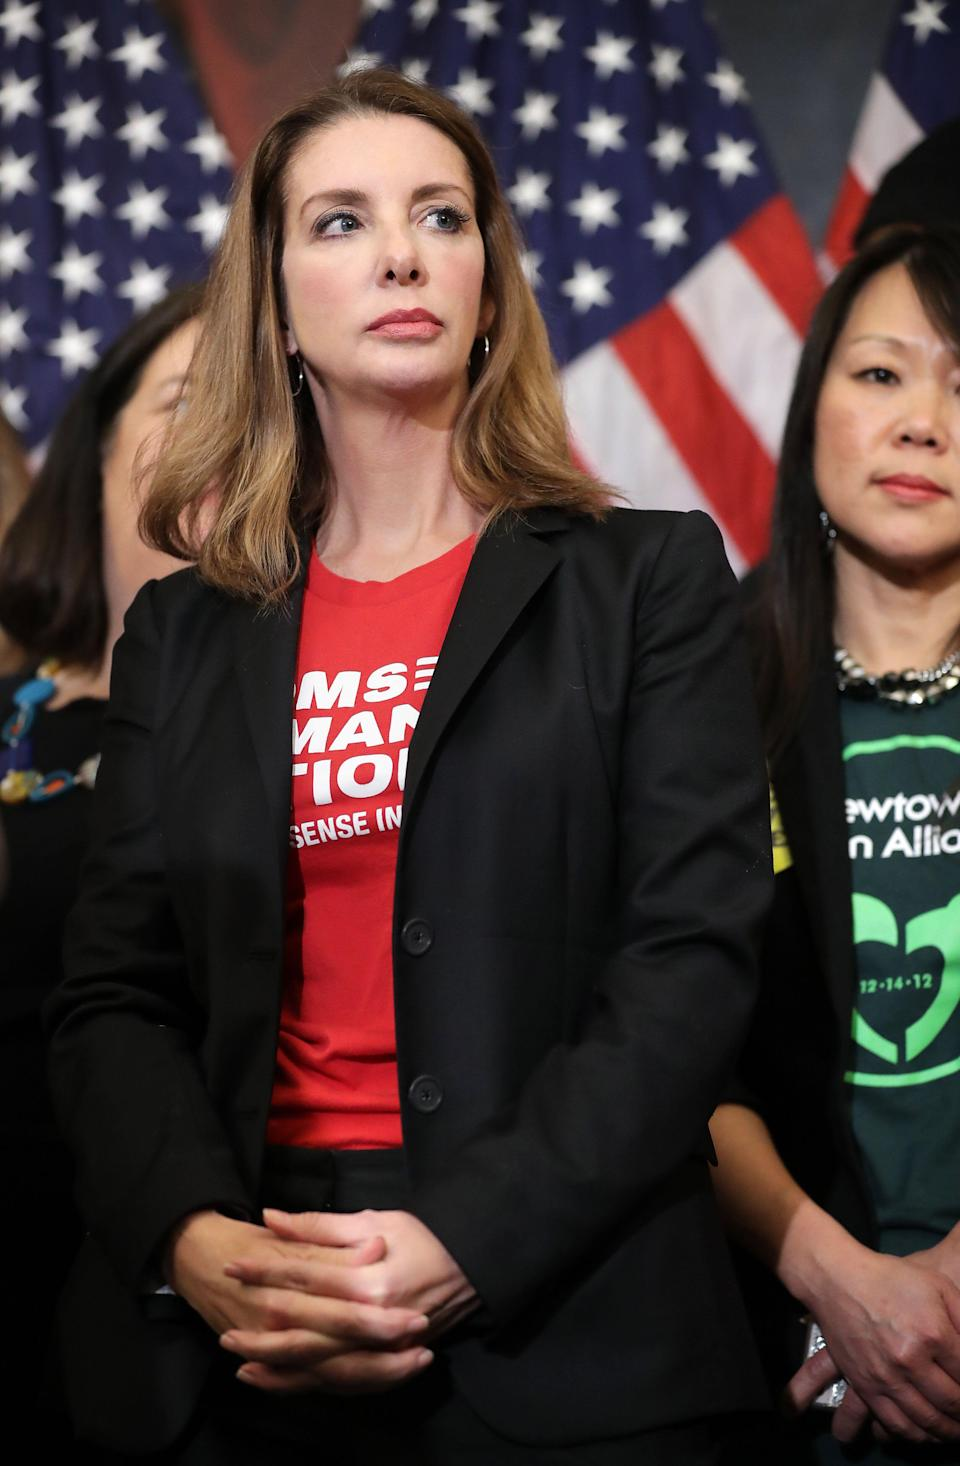 WASHINGTON, DC - JANUARY 08: Founder of Moms Demand Action for Gun Sense founder Shannon Watts  joins other gun safety advocates for a news conference to introduce legislation to expand background checks for firearm sales in the Rayburn Room of the U.S. Capitol January 08, 2019 in Washington, DC. Eight years to the day that Giffords was shot at a constituent meeting in Tuscon, Arizona, Speaker Nancy Pelosi (D-CA) unveiled a universal background check bill that House Democrats hope to pass within the first 100 days of the new Congress.   (Photo by Chip Somodevilla/Getty Images)